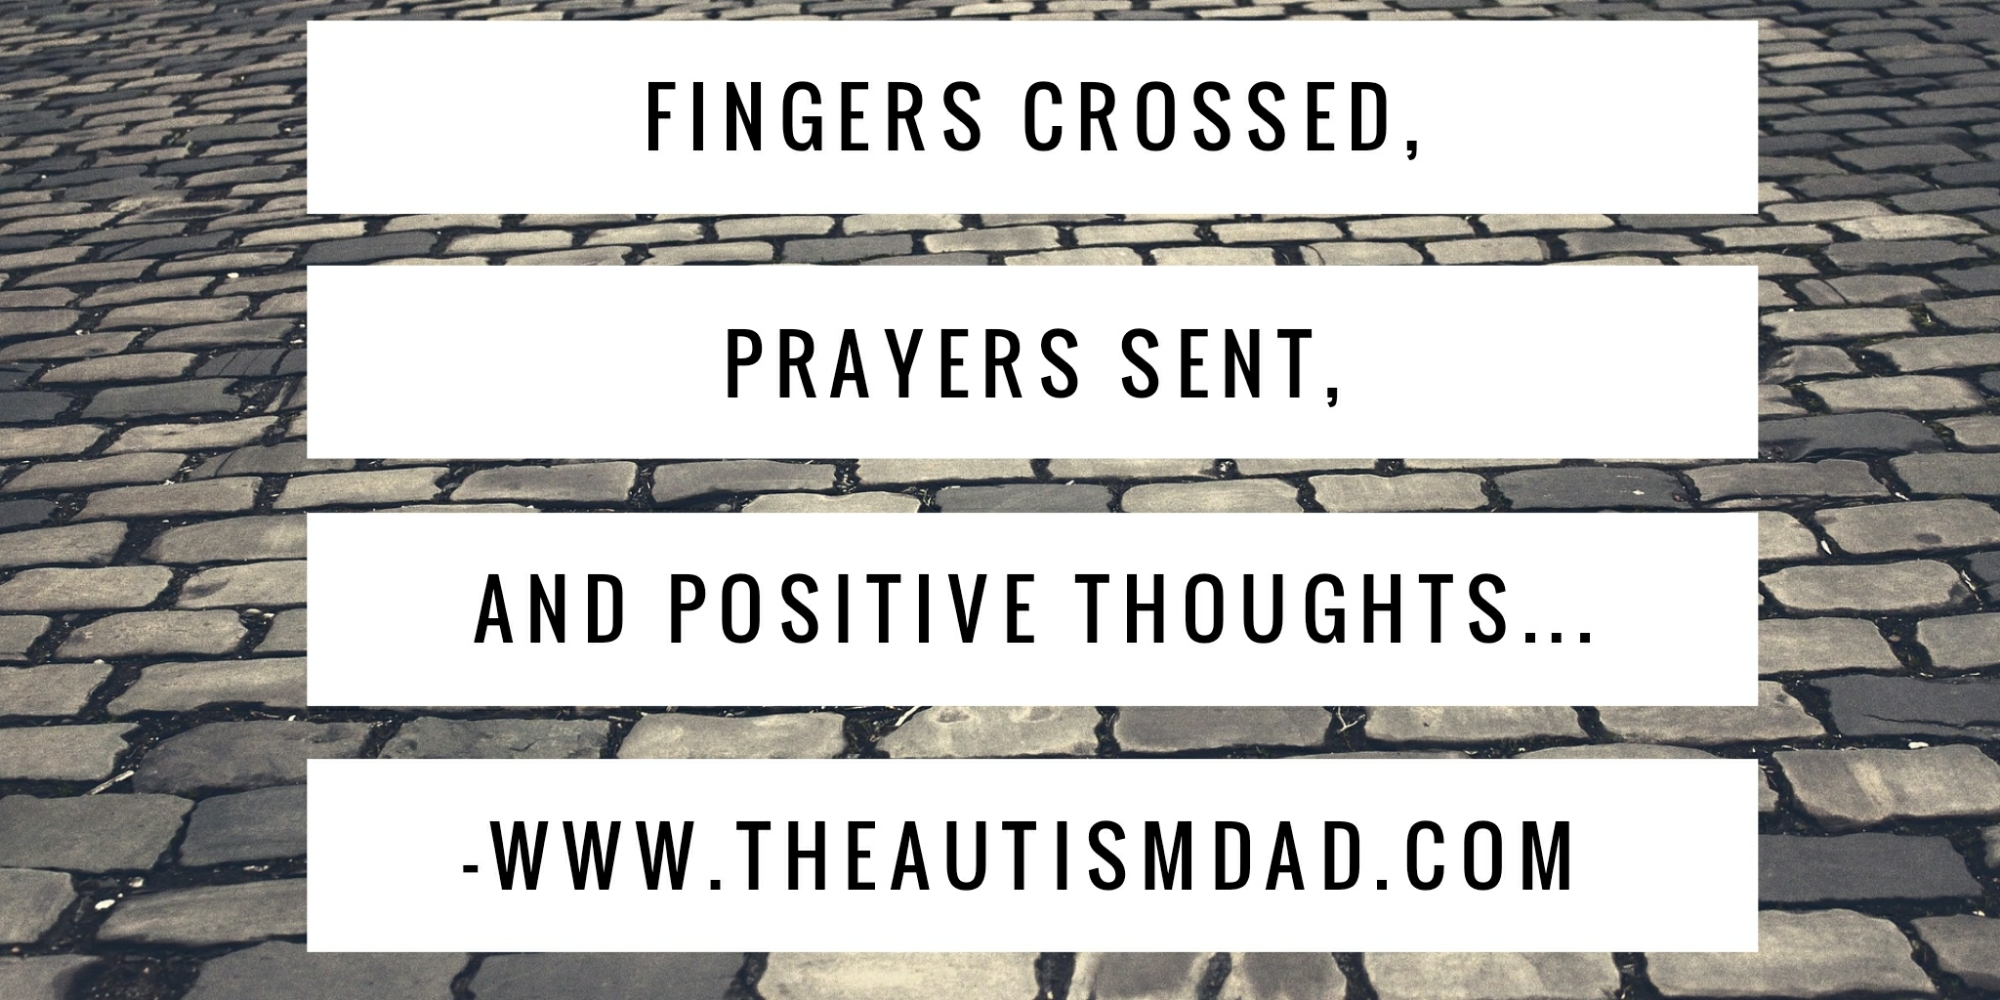 Fingers crossed, prayers sent, and positive thoughts…